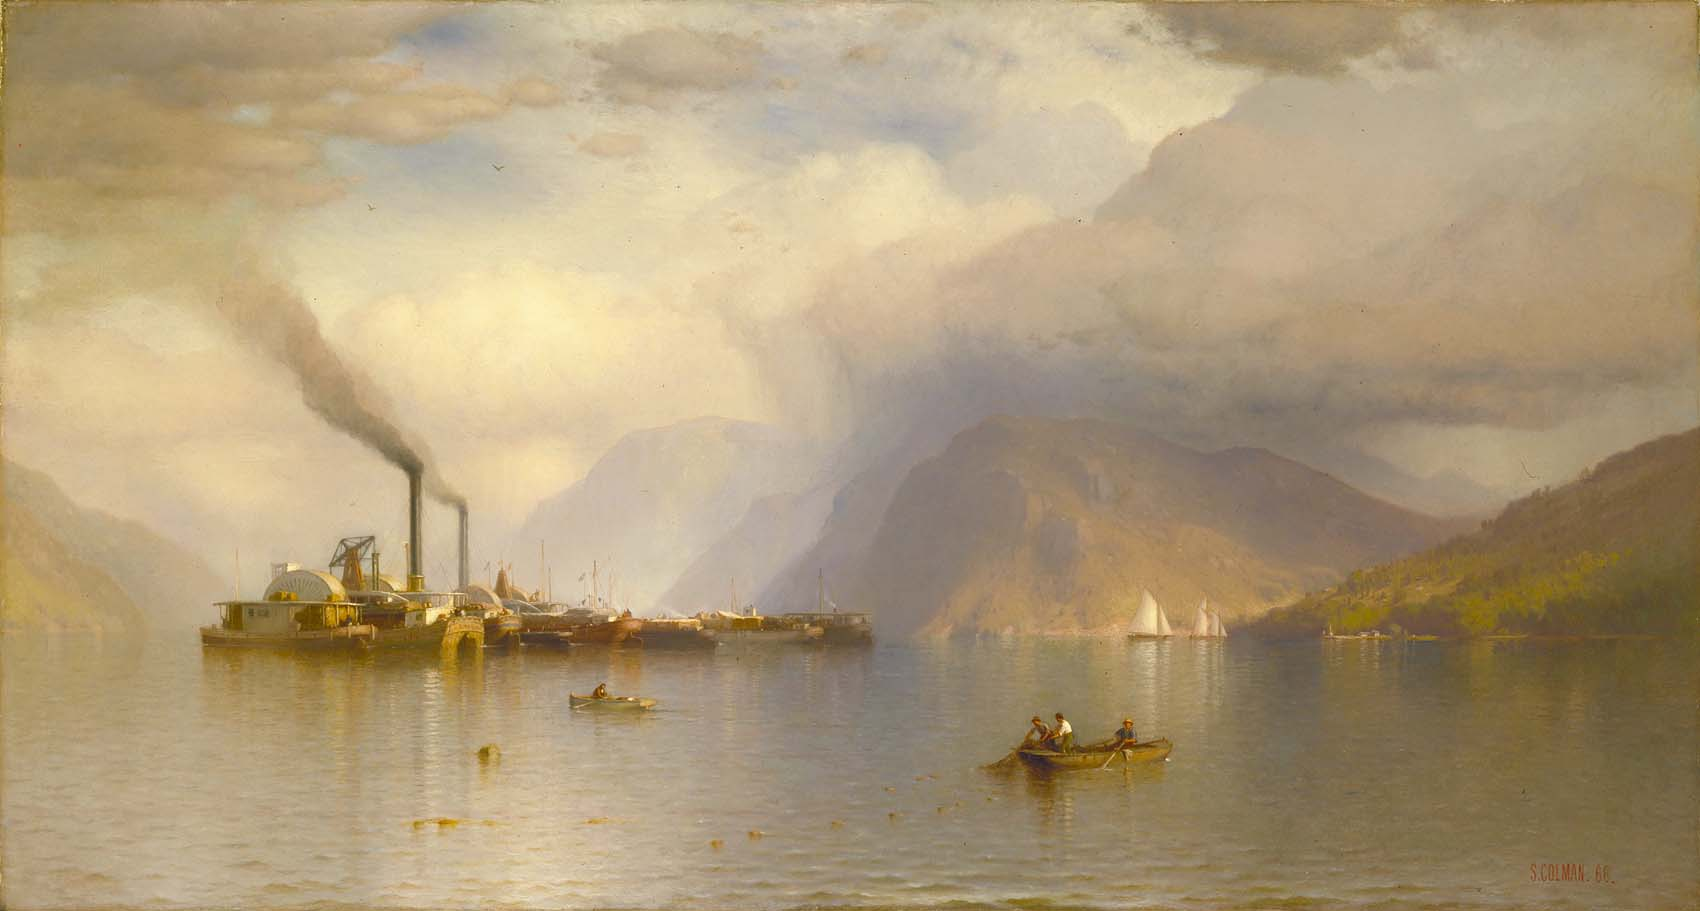 https://i1.wp.com/upload.wikimedia.org/wikipedia/commons/c/cc/Colman_Storm_King_on_the_Hudson.jpg